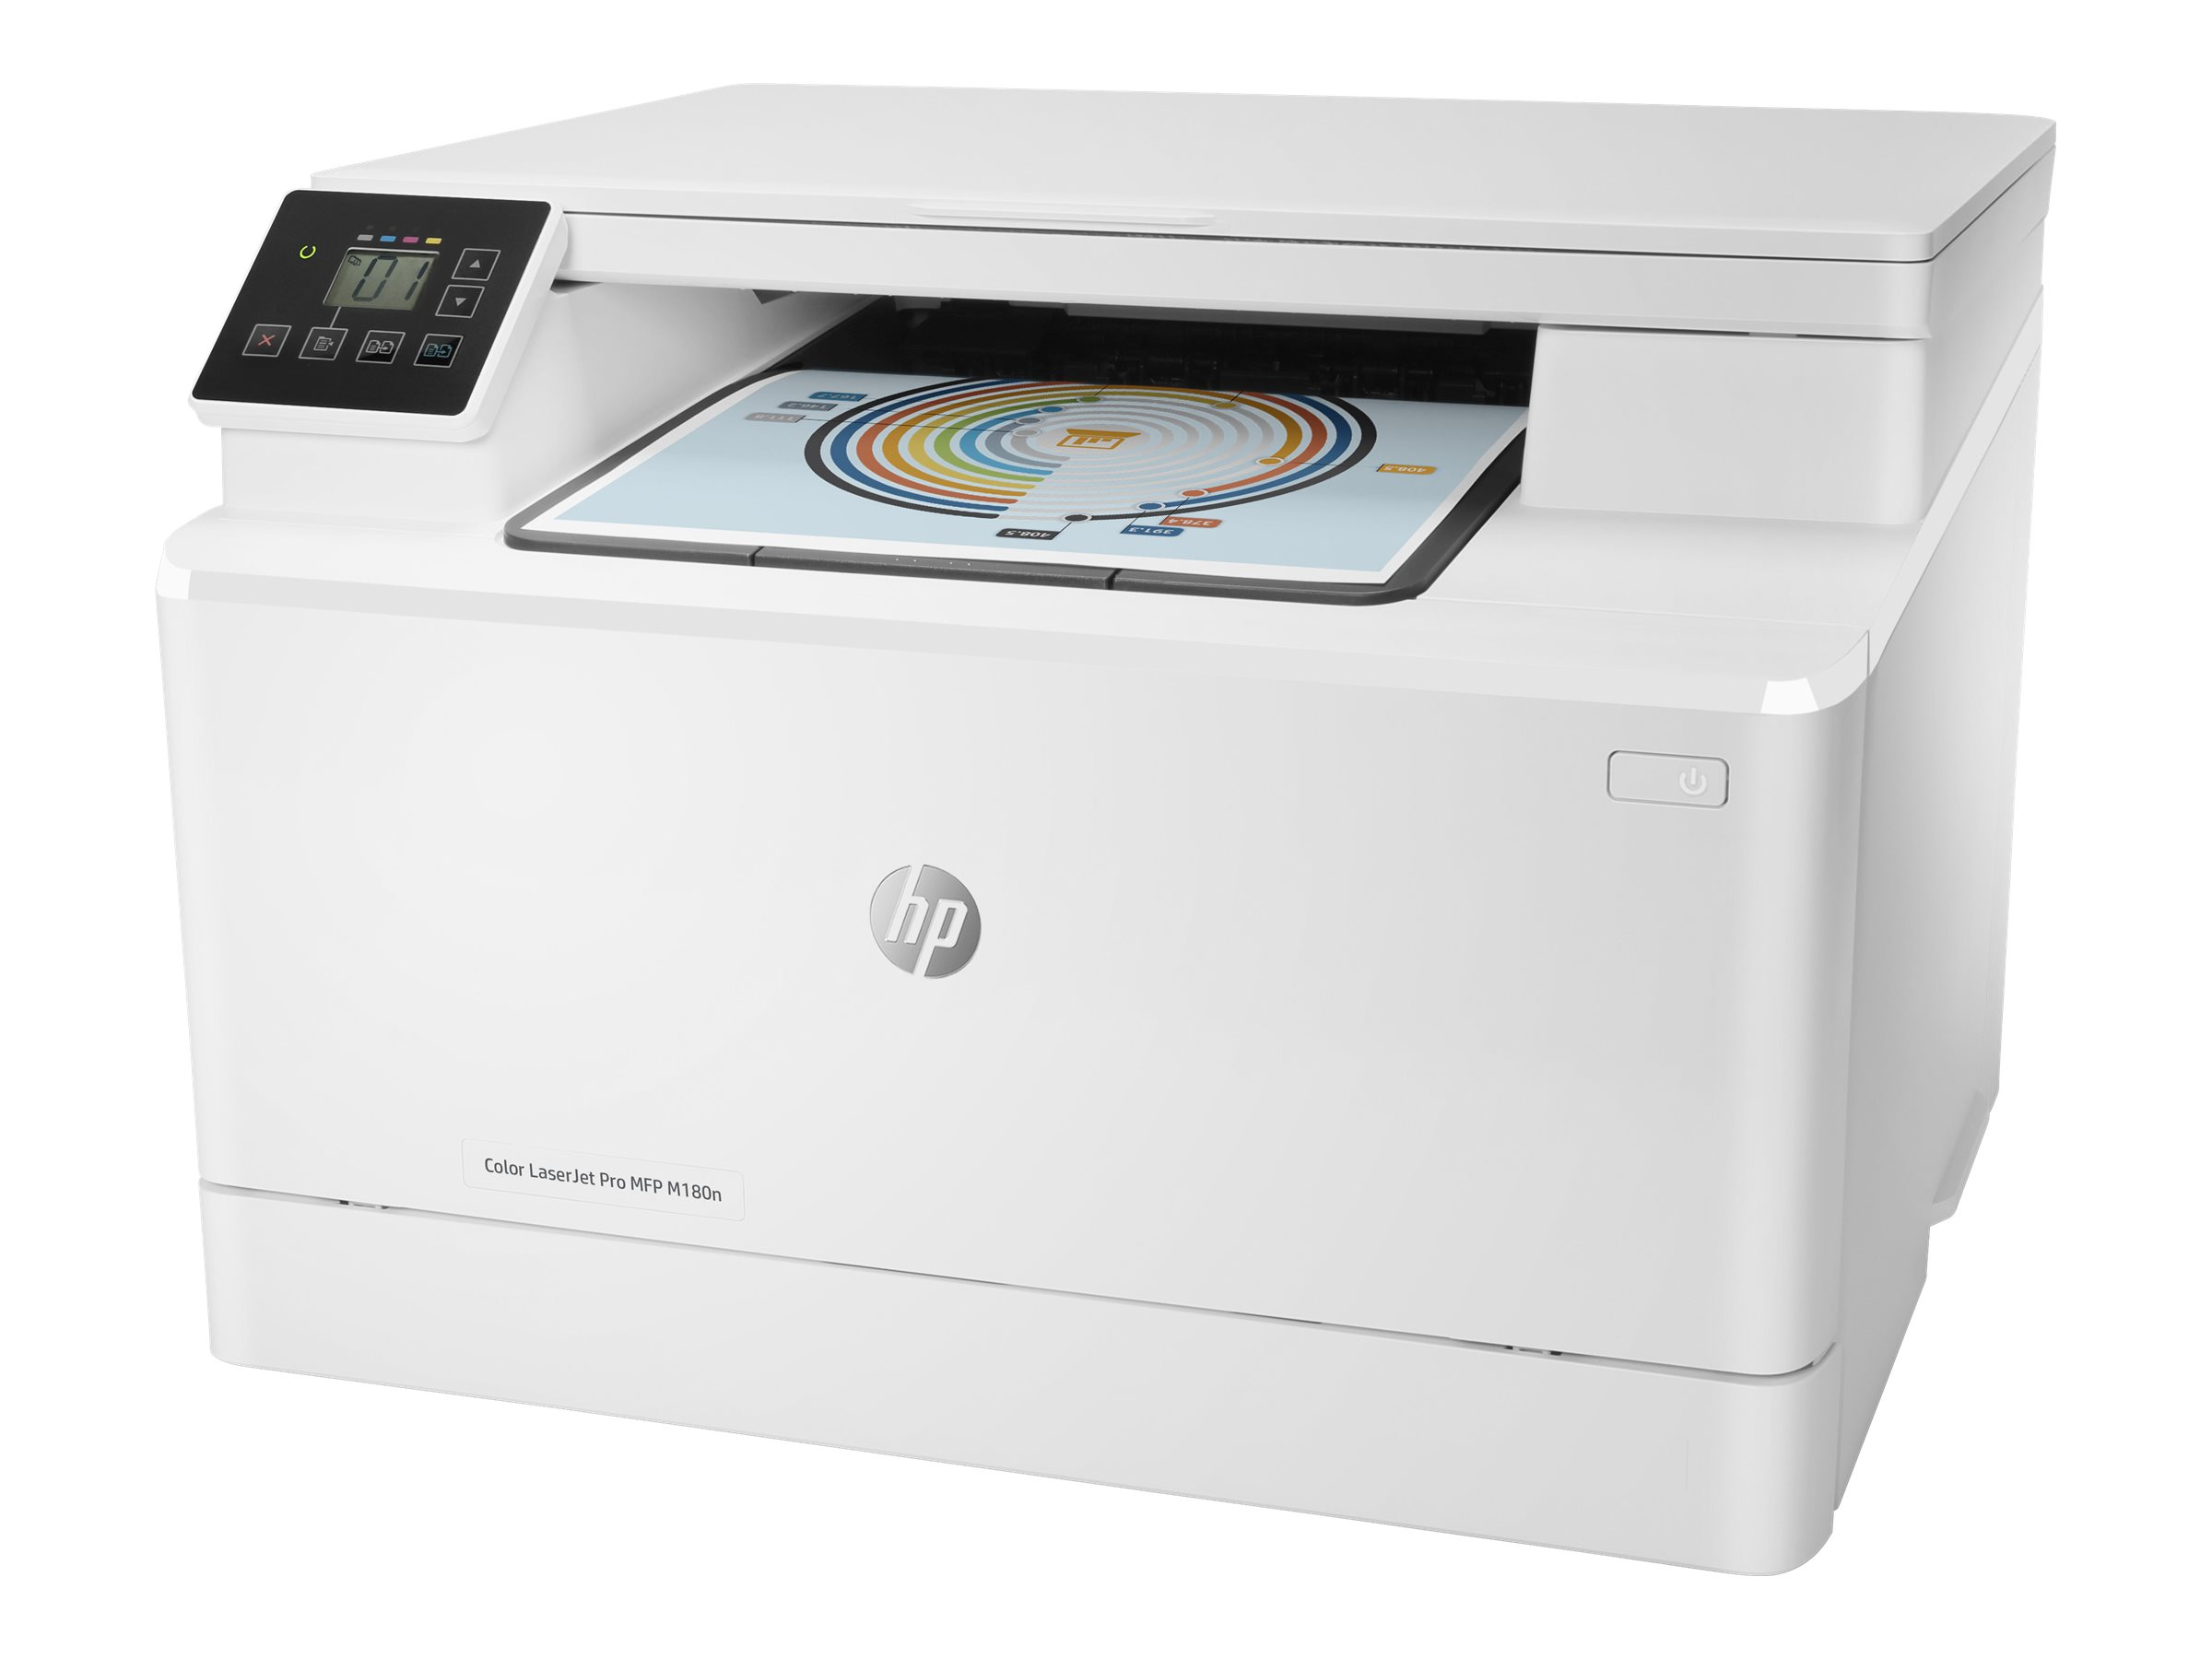 HP Color LaserJet Pro MFP M180n - imprimante multifonctions - couleur - laser